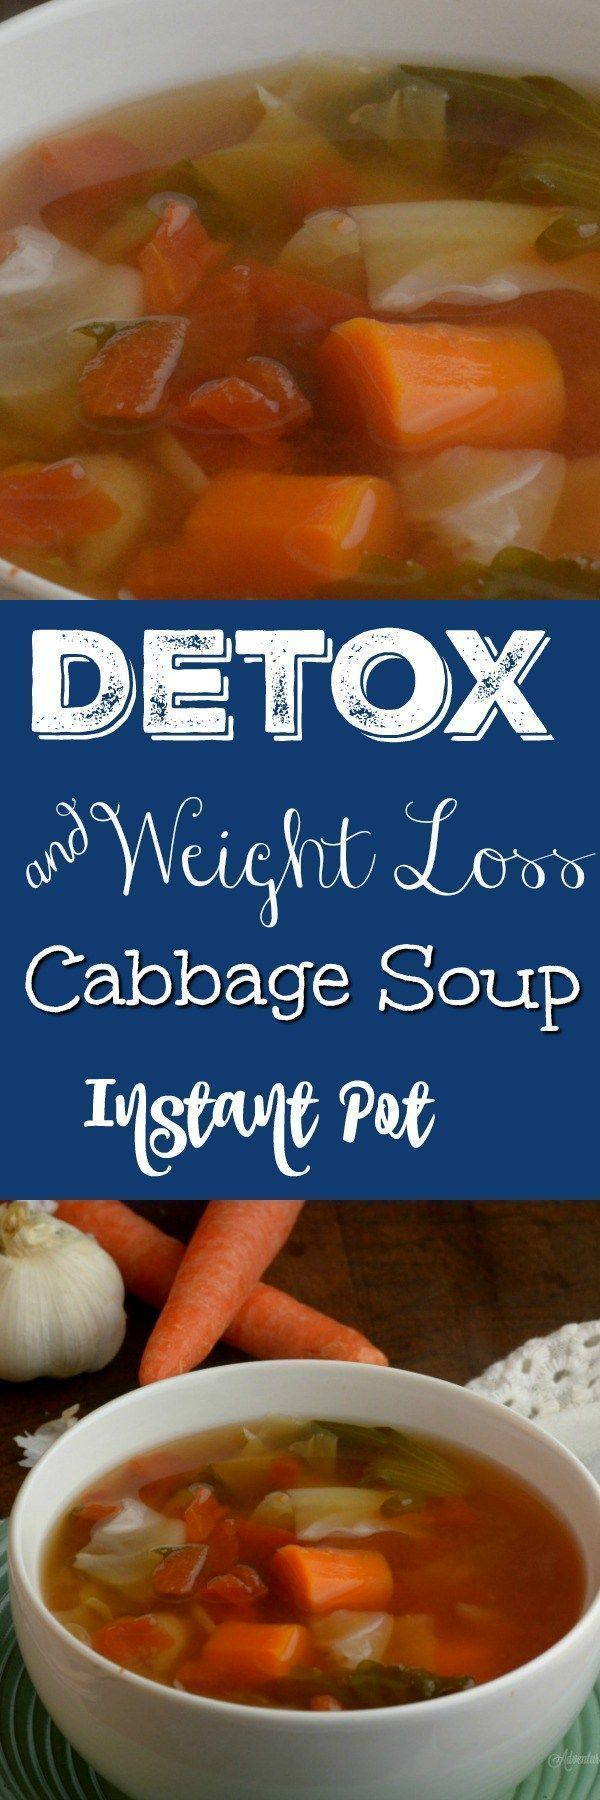 Instant Pot Detox and Weightloss Cabbage Soup This soup is packed full of vitami…